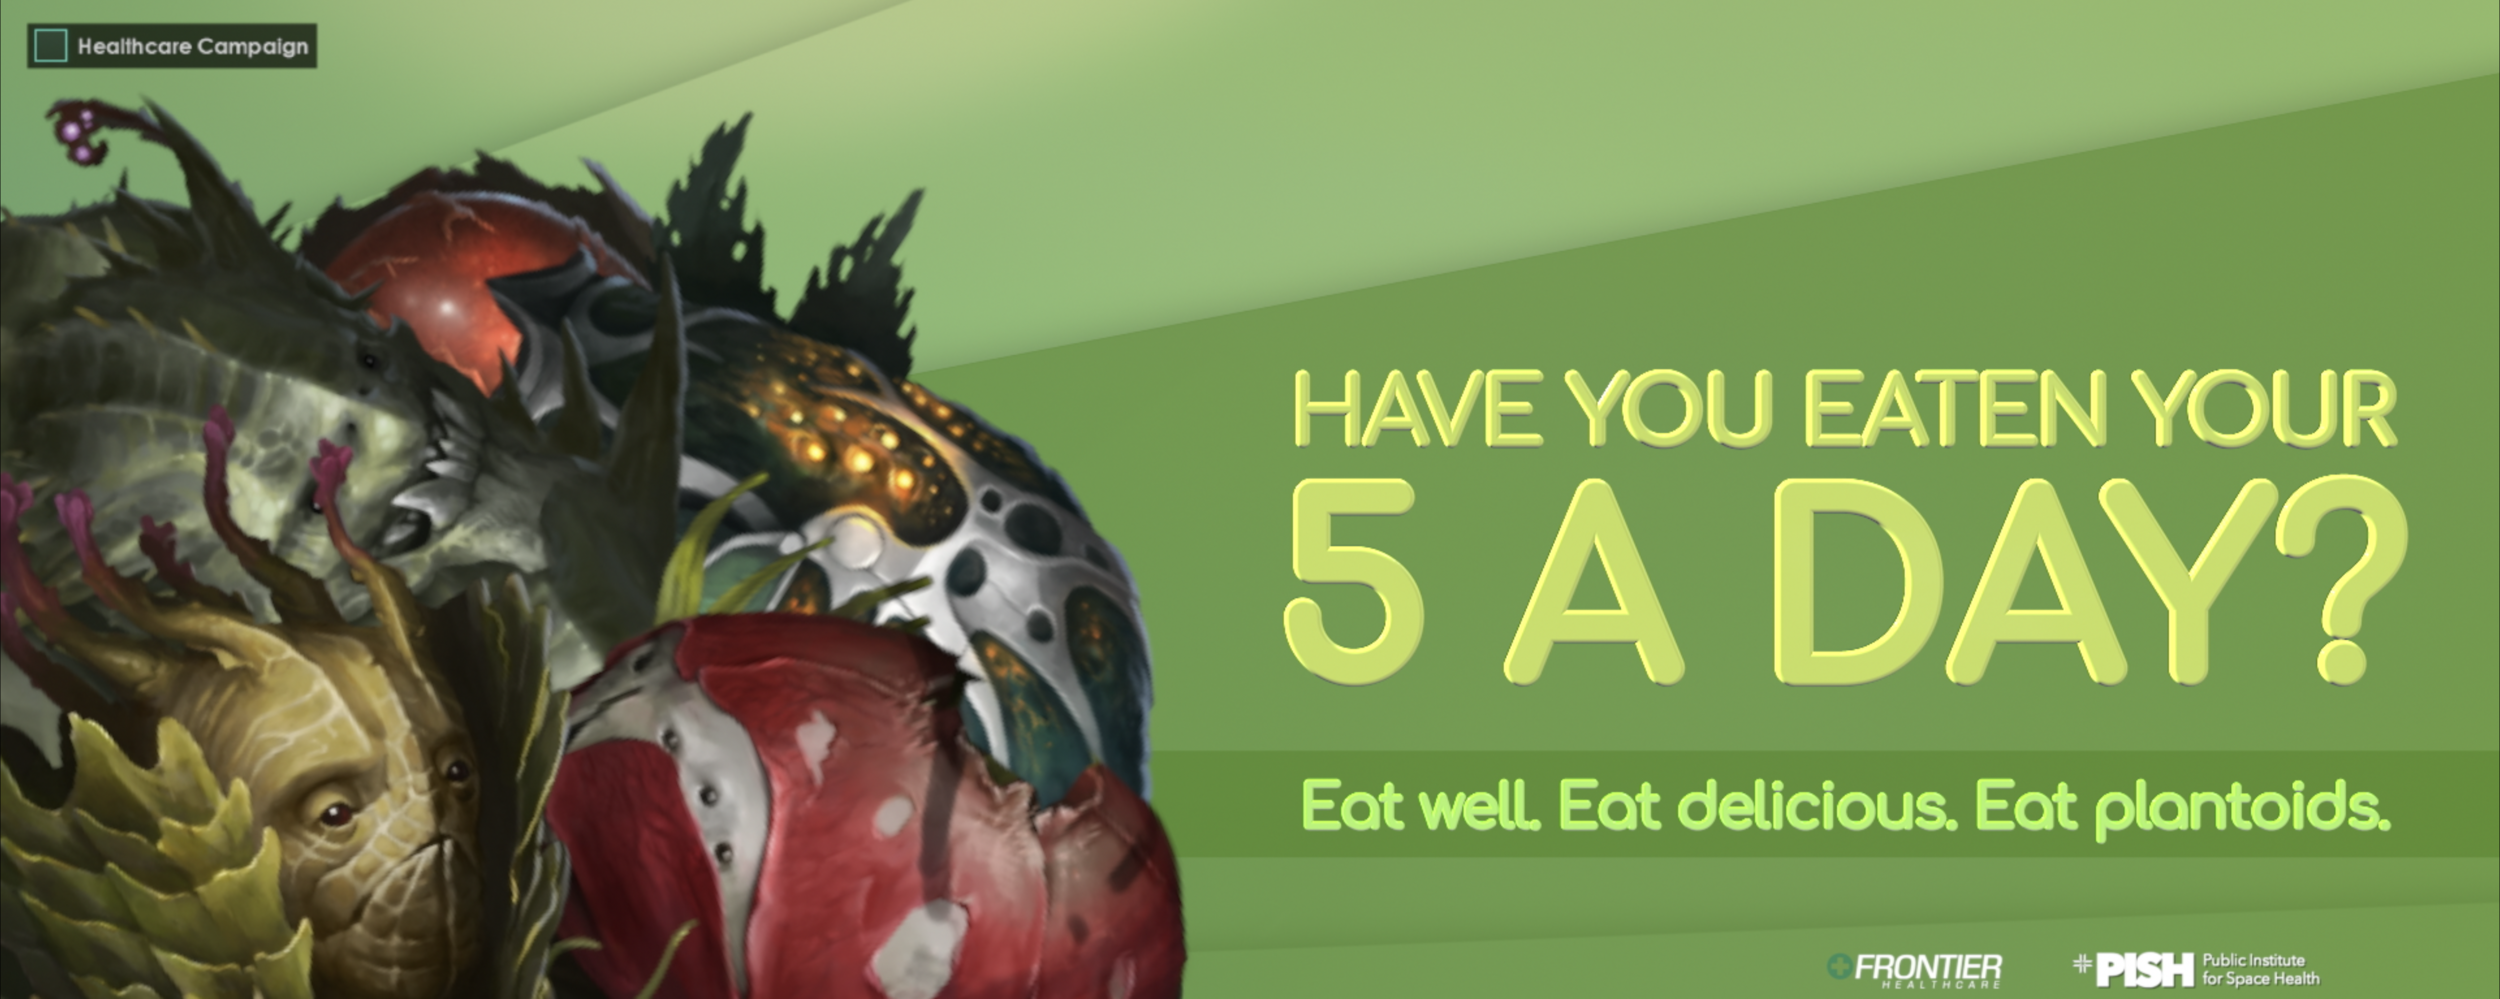 I - Commercial, 5 A Day.png